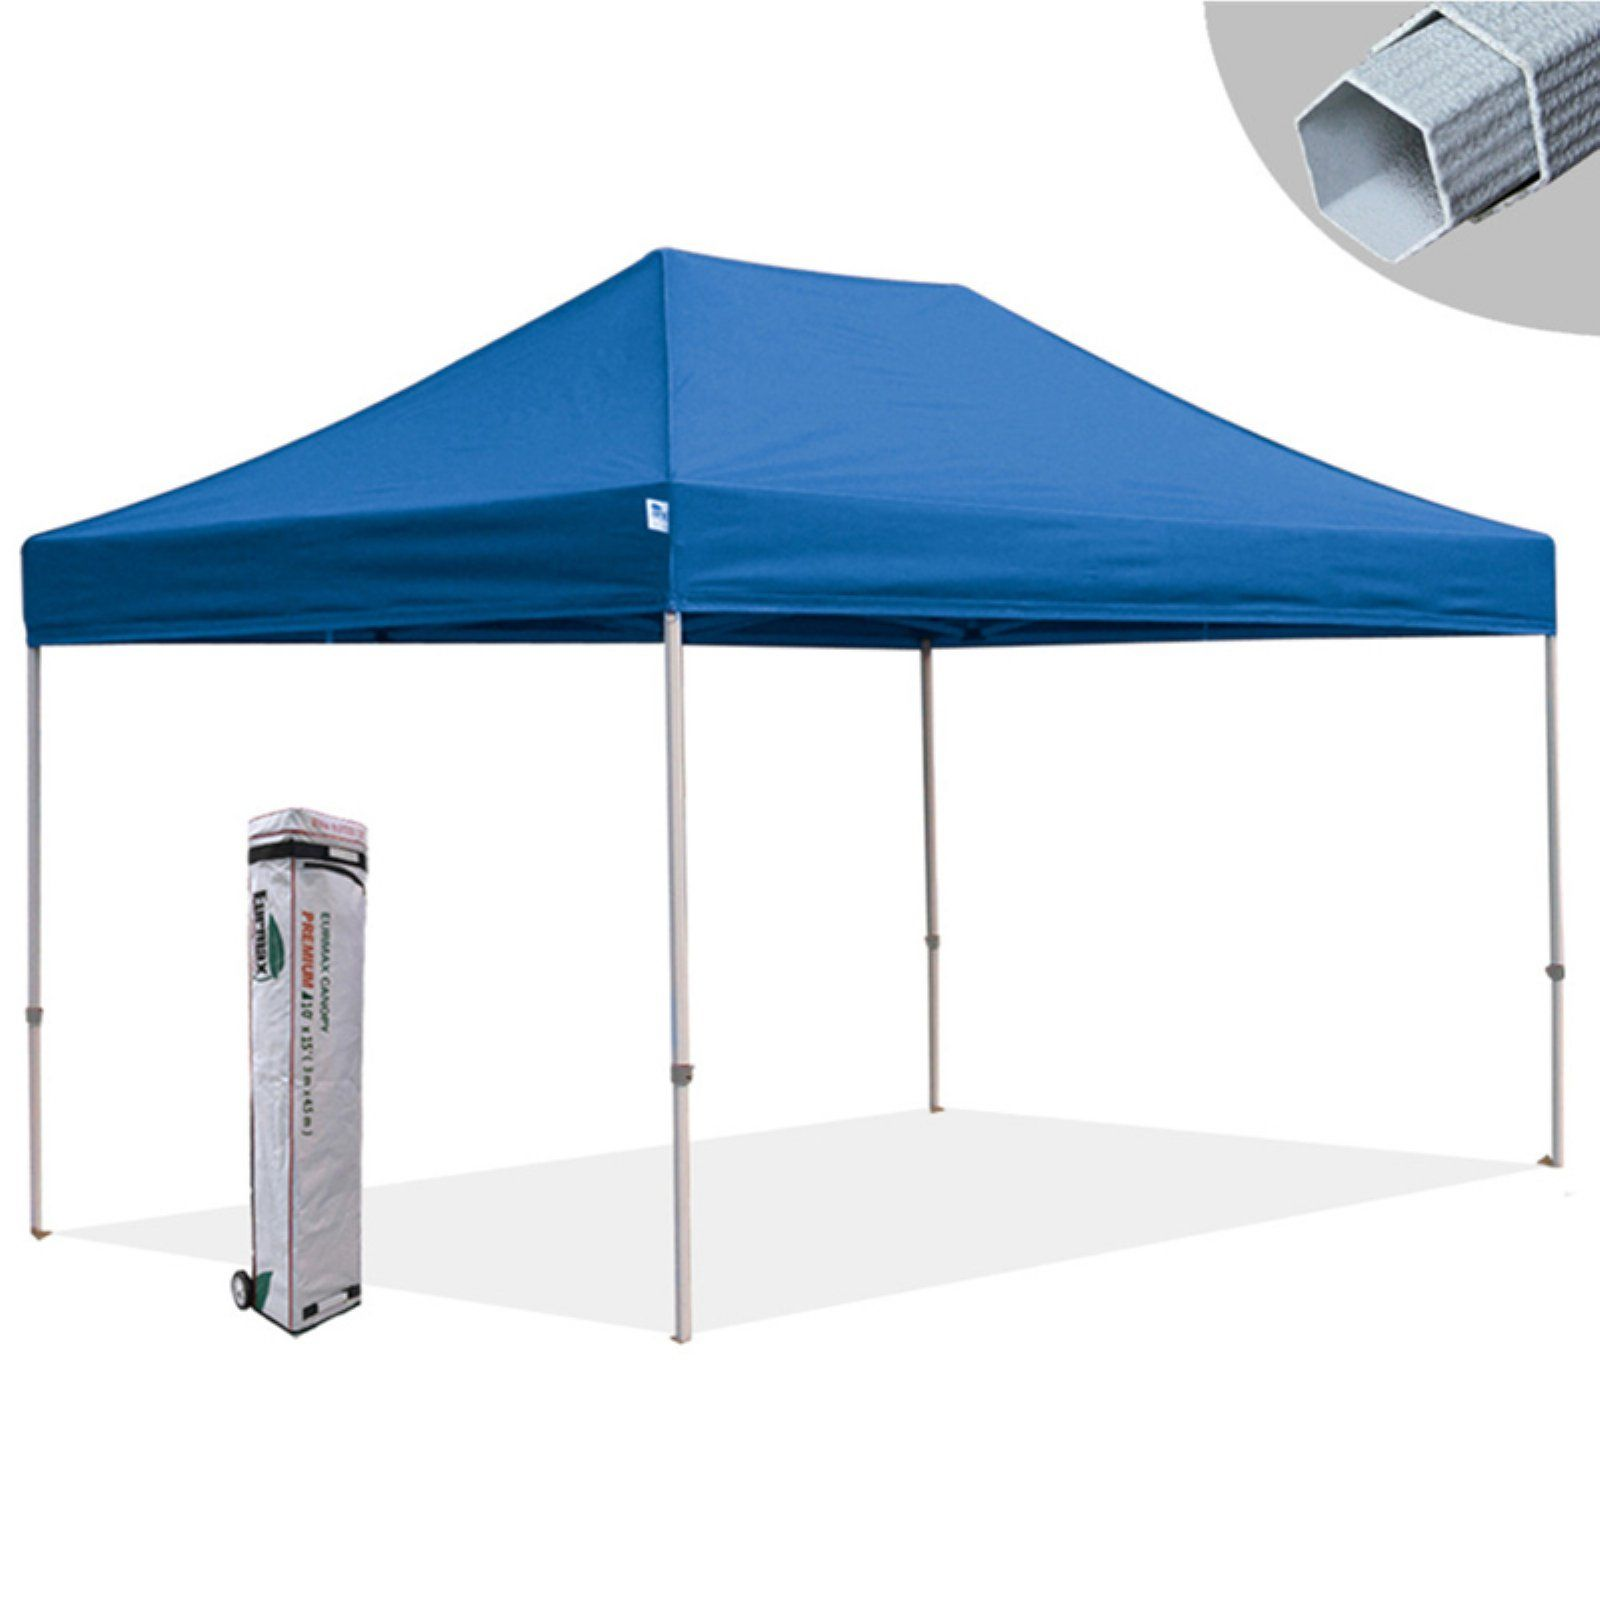 Replacement Canopy Top Silver Outdoor Canopies 10x20 Car Ports Tarp Cover Shade Carport Canopy Canopy Tent Gazebo Tent